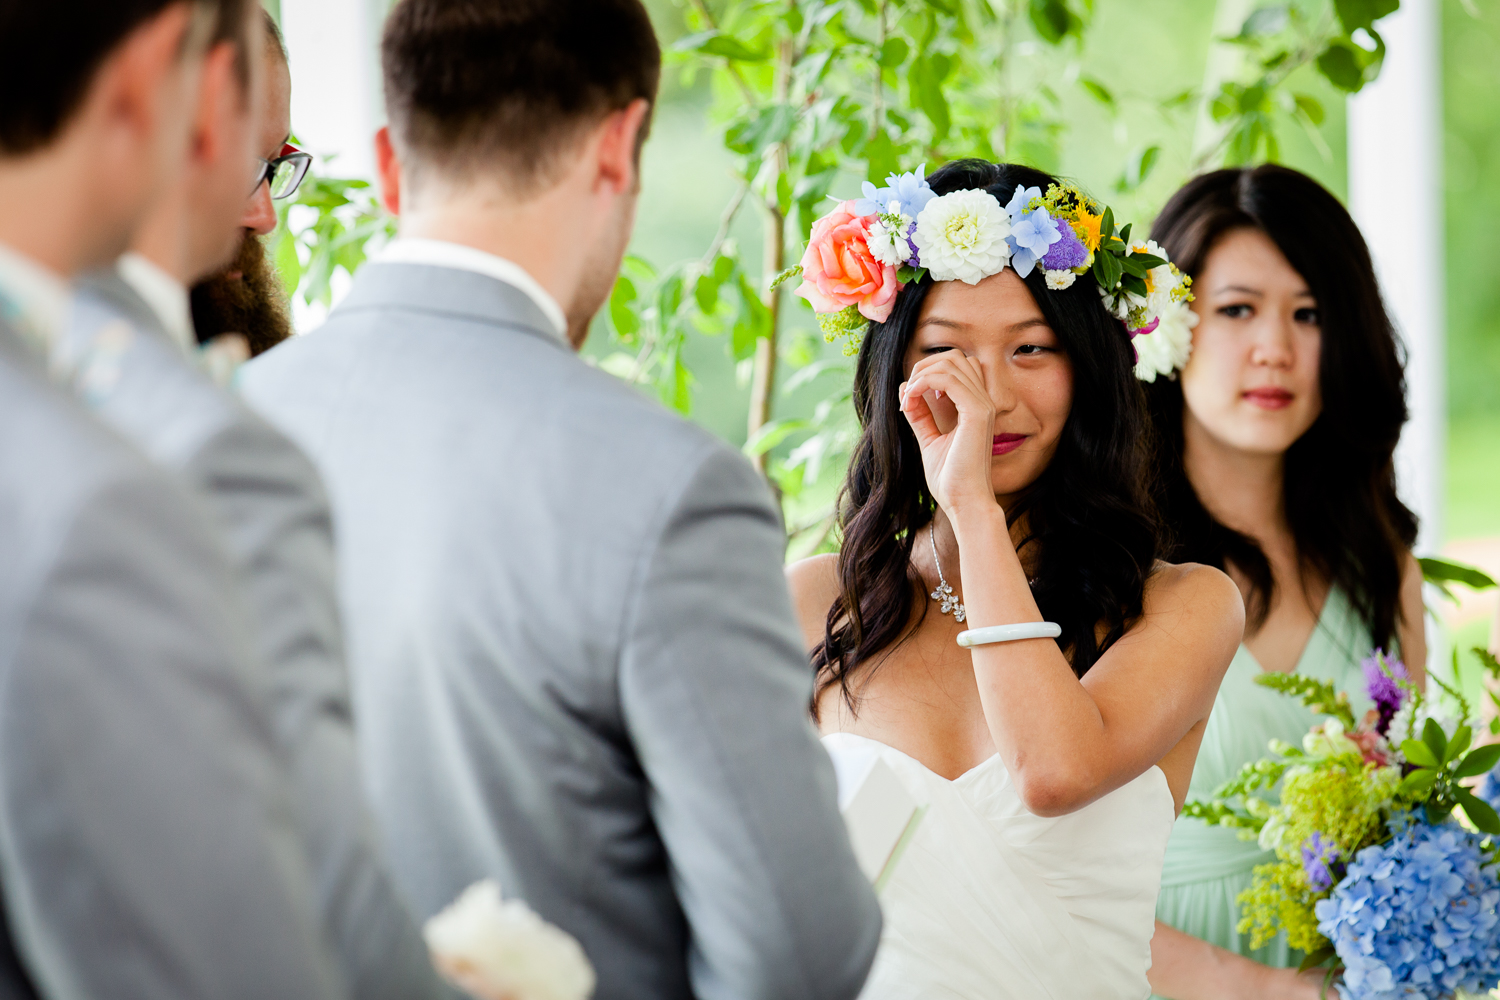 bride sheds tear during ceremony